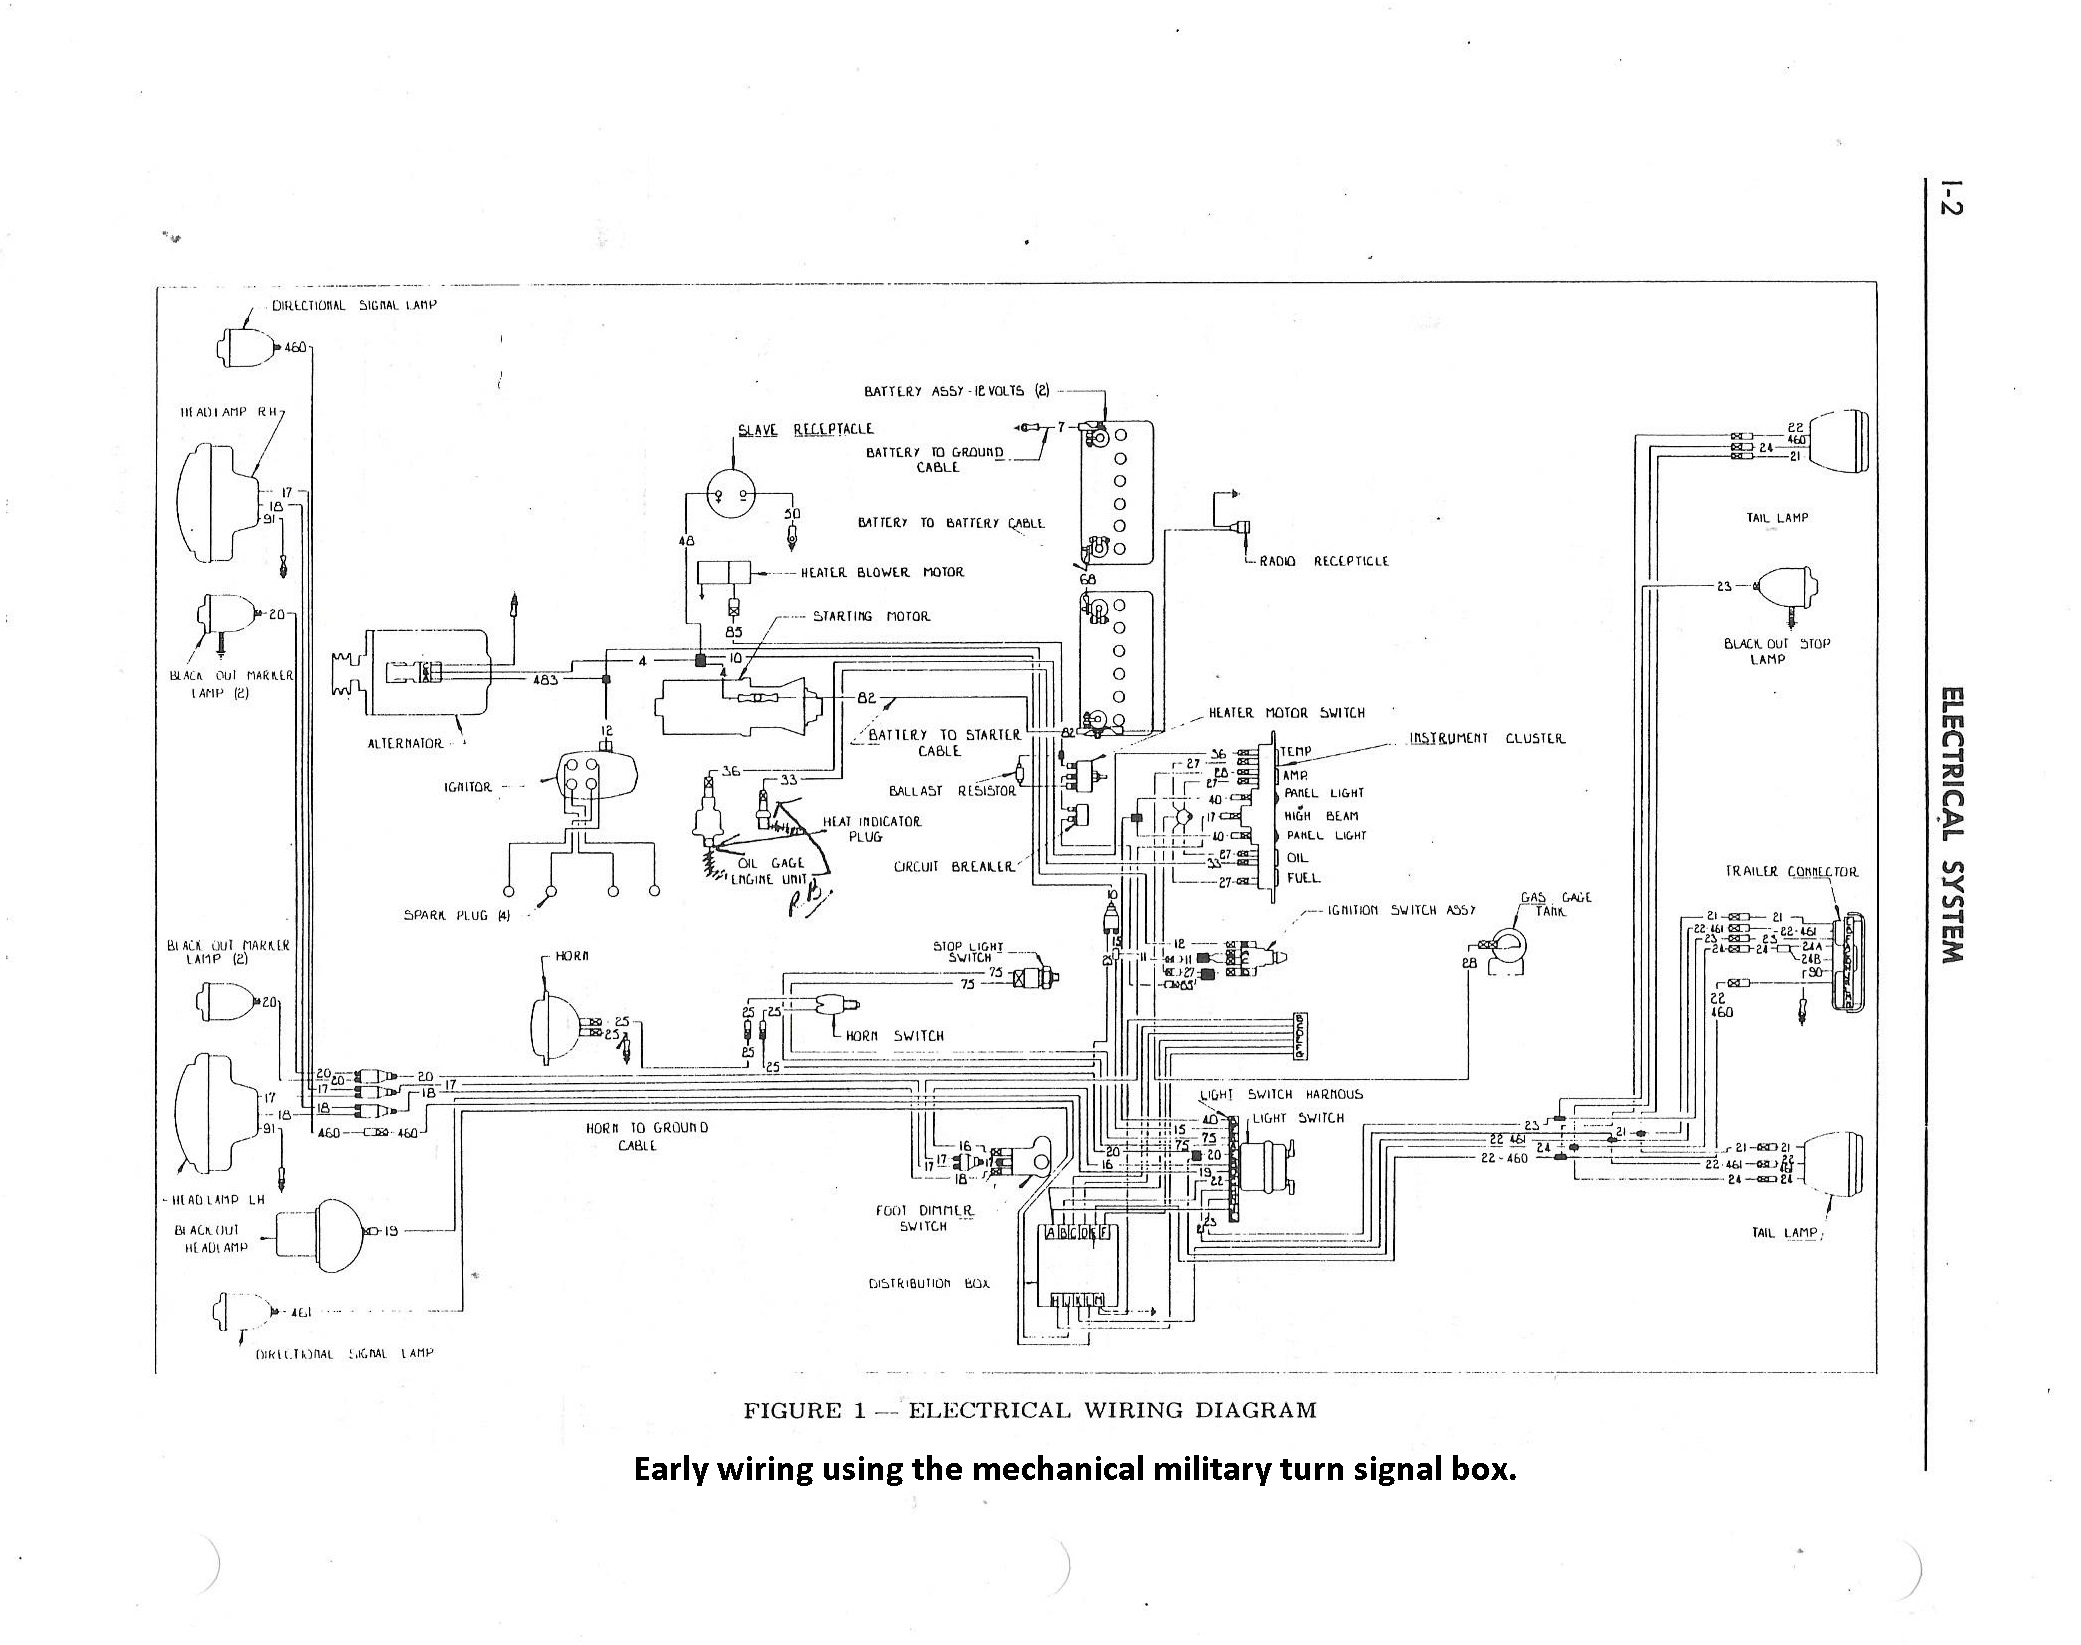 M38a1 Wiring Diagram Another Blog About 1963 Willys Jeep Light Switch Free Engine Image For Electrical